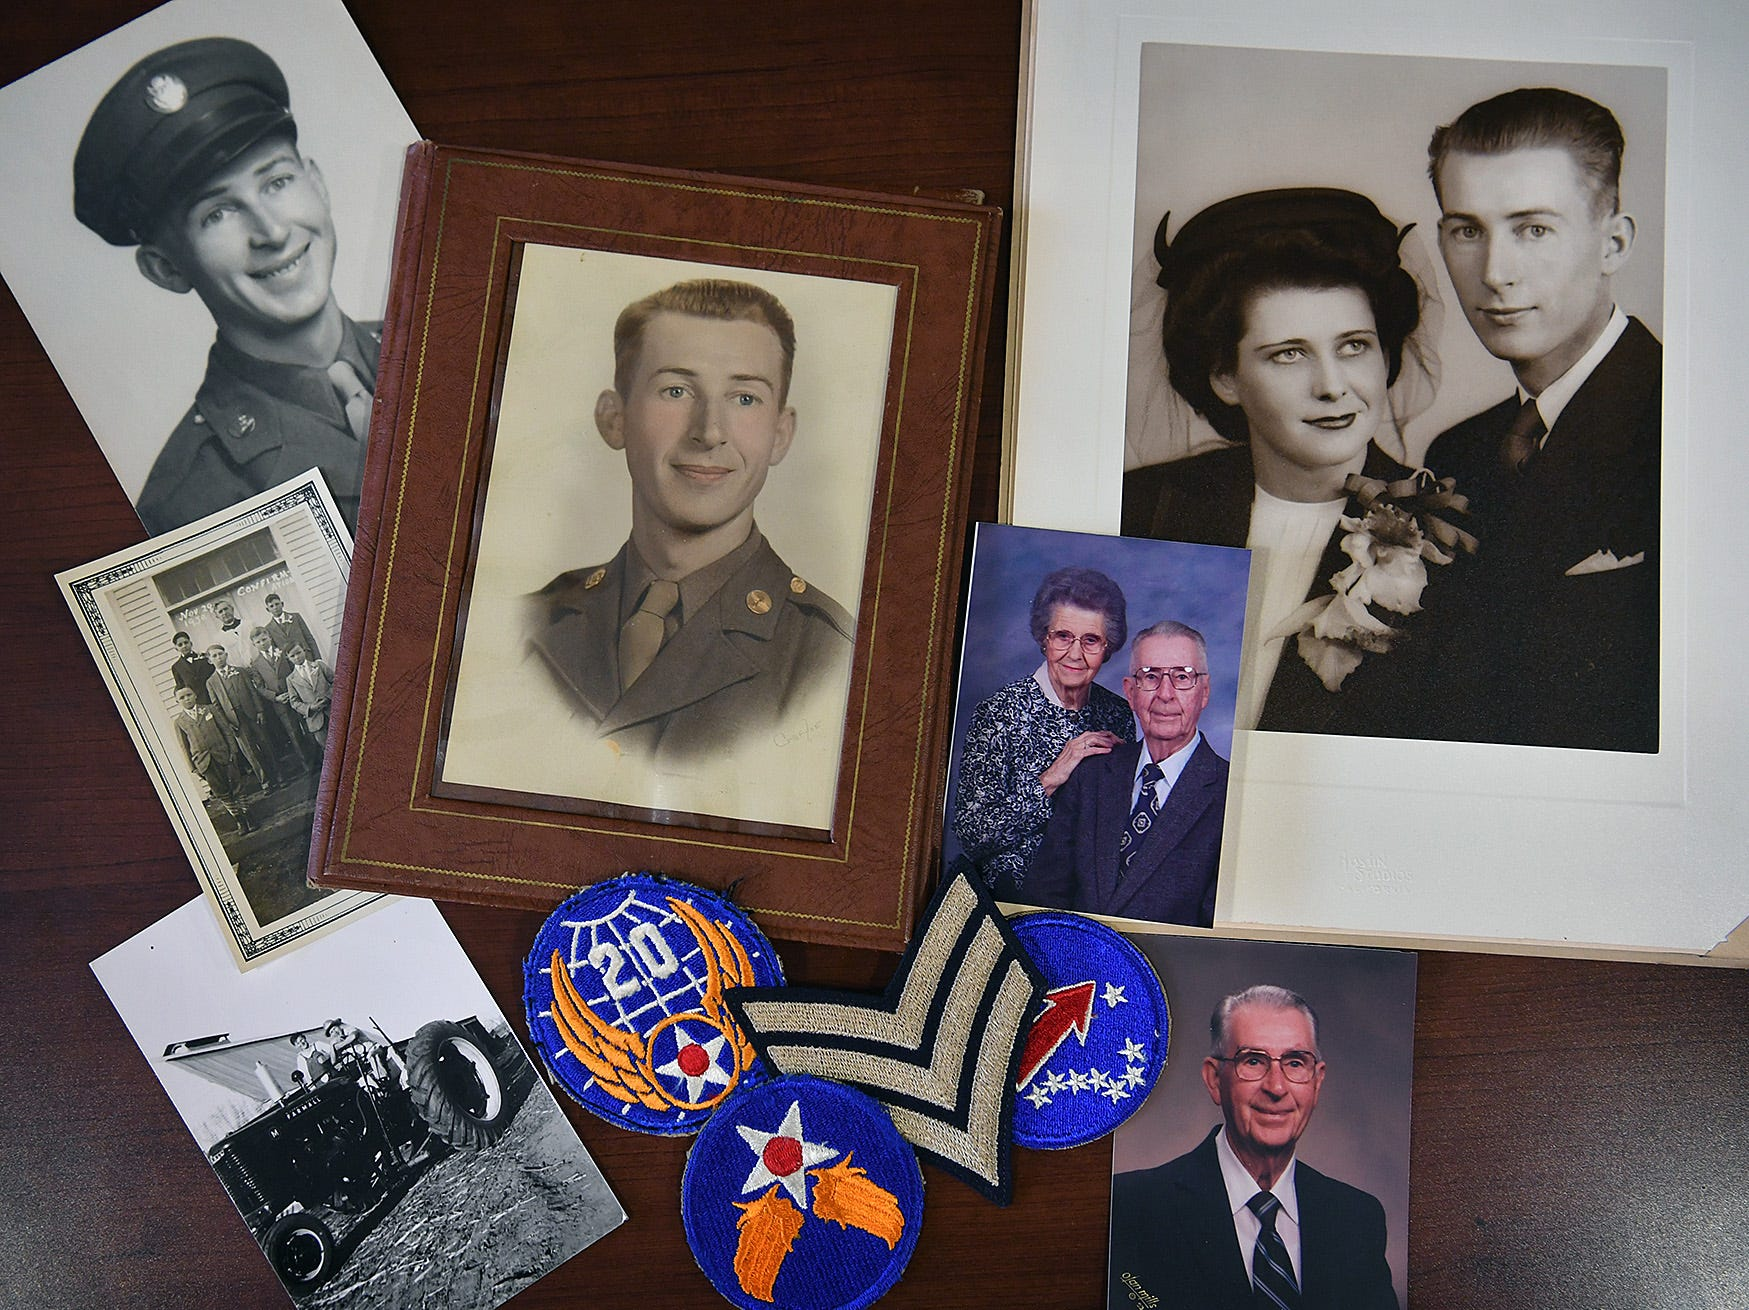 Family photos of Joe Cuba. Cuba grew up farming in Megargel, Texas and later served with the U.S. Army Air Corps in World War II. He will turn 100 on March 2.